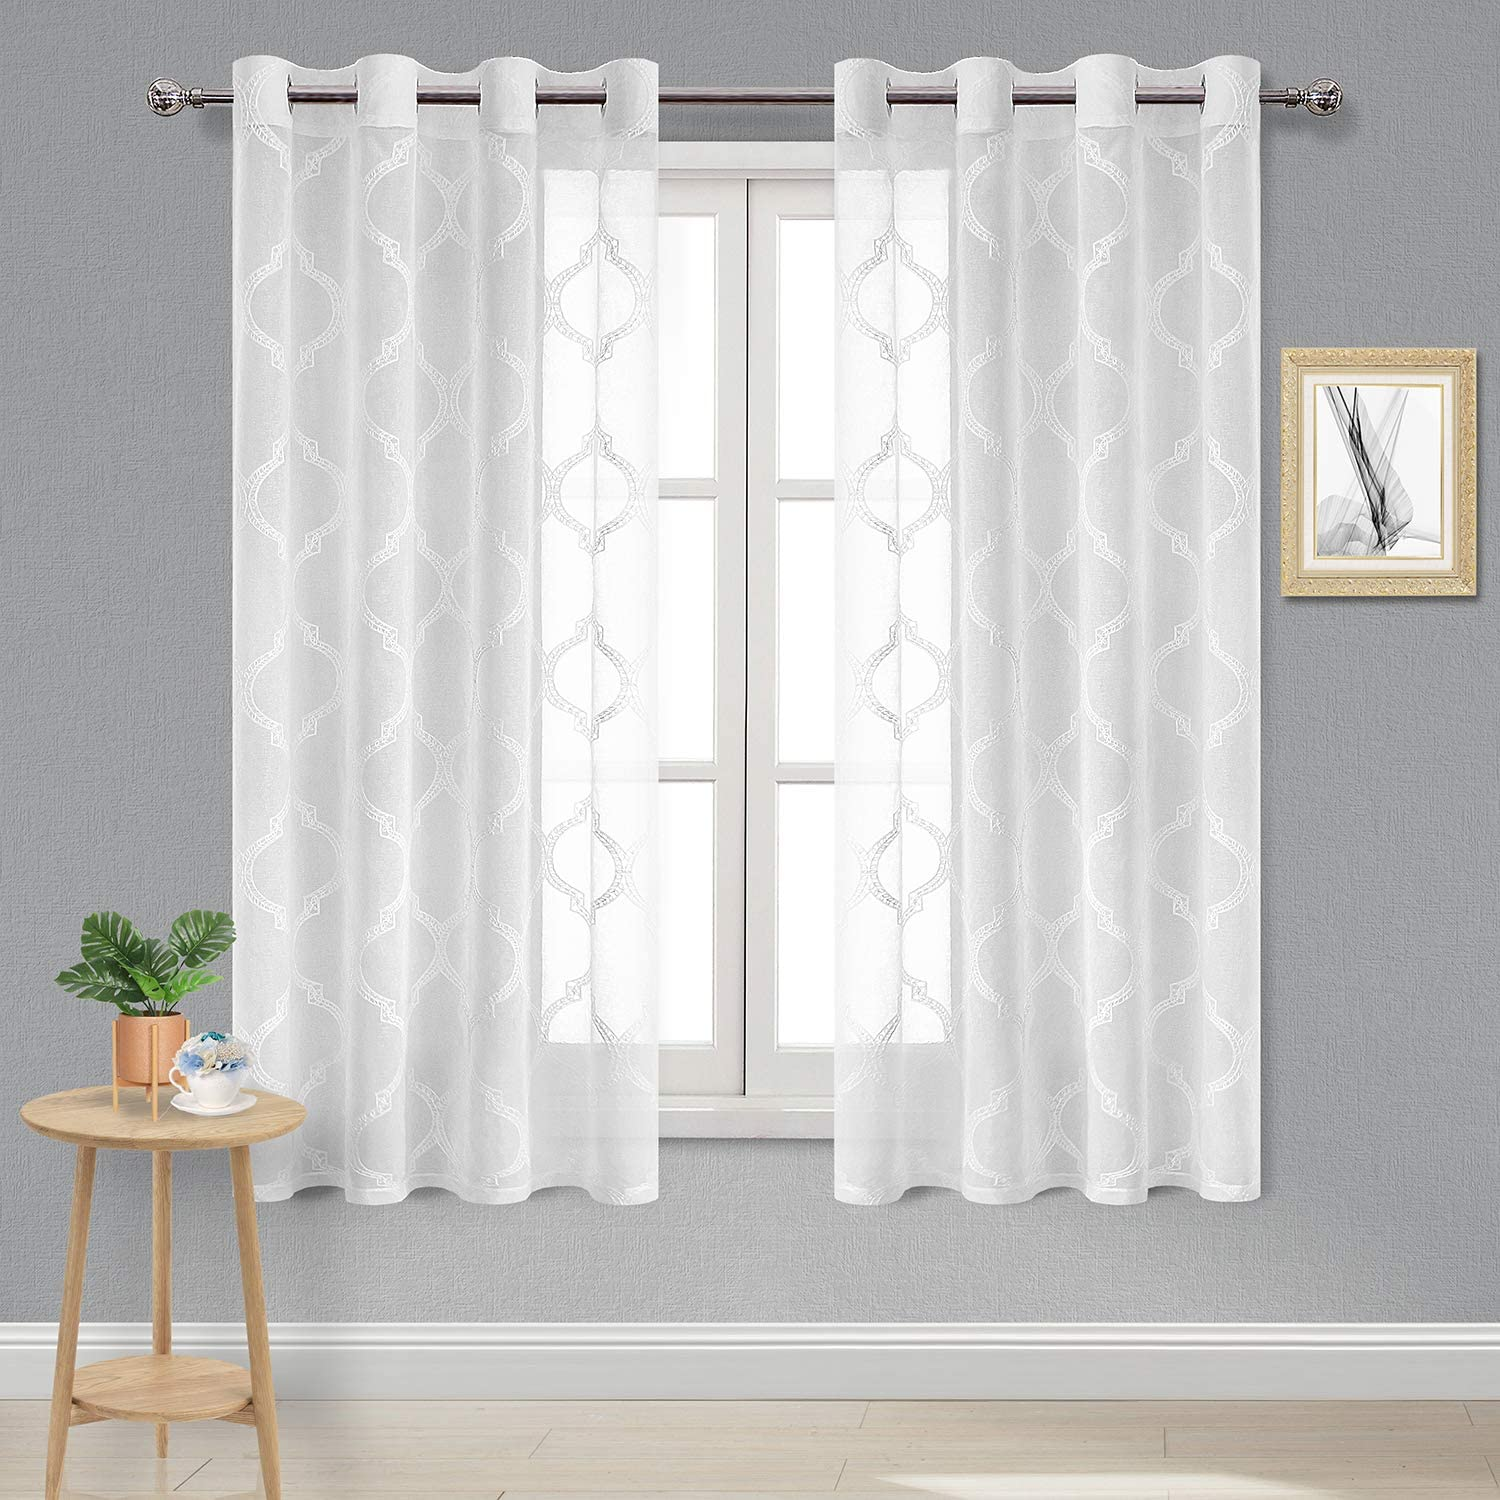 DWCN Faux Linen Sheer Curtains - Moroccan Embroidered Grommet Top Semi Voile Bedroom and Living Room Window Curtains, Set of 2 Panels, 52 x 63 Inch Length, Off White